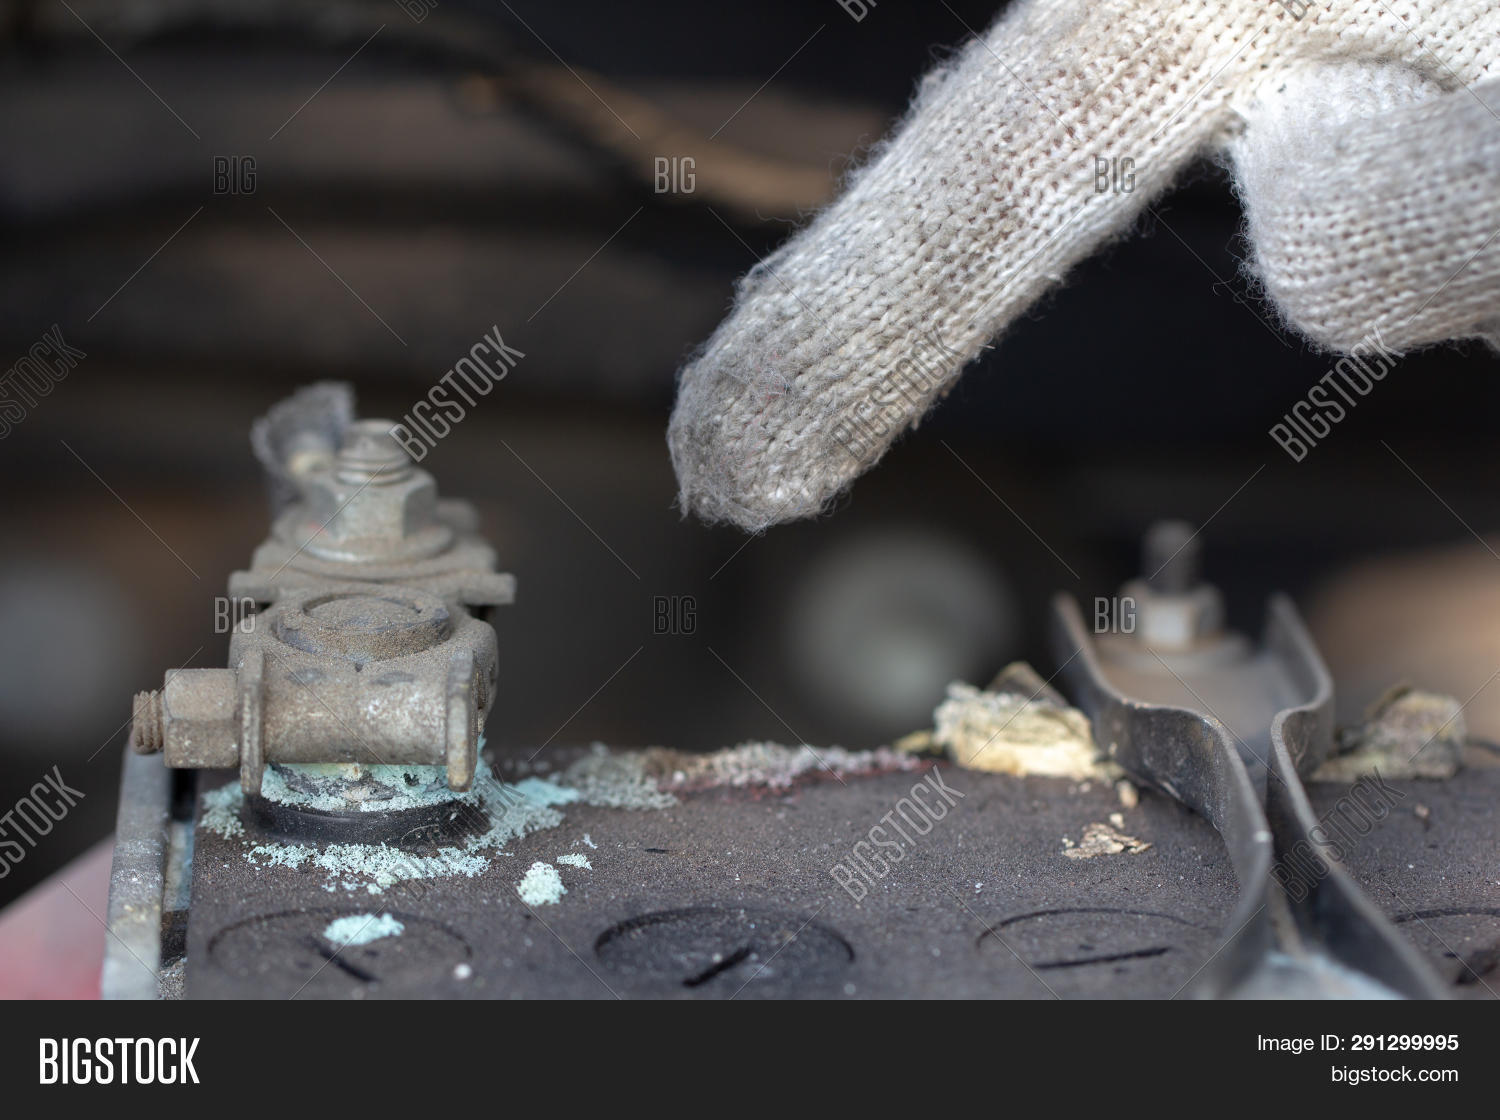 Mechanic Hand Pointing Image Photo Free Trial Bigstock